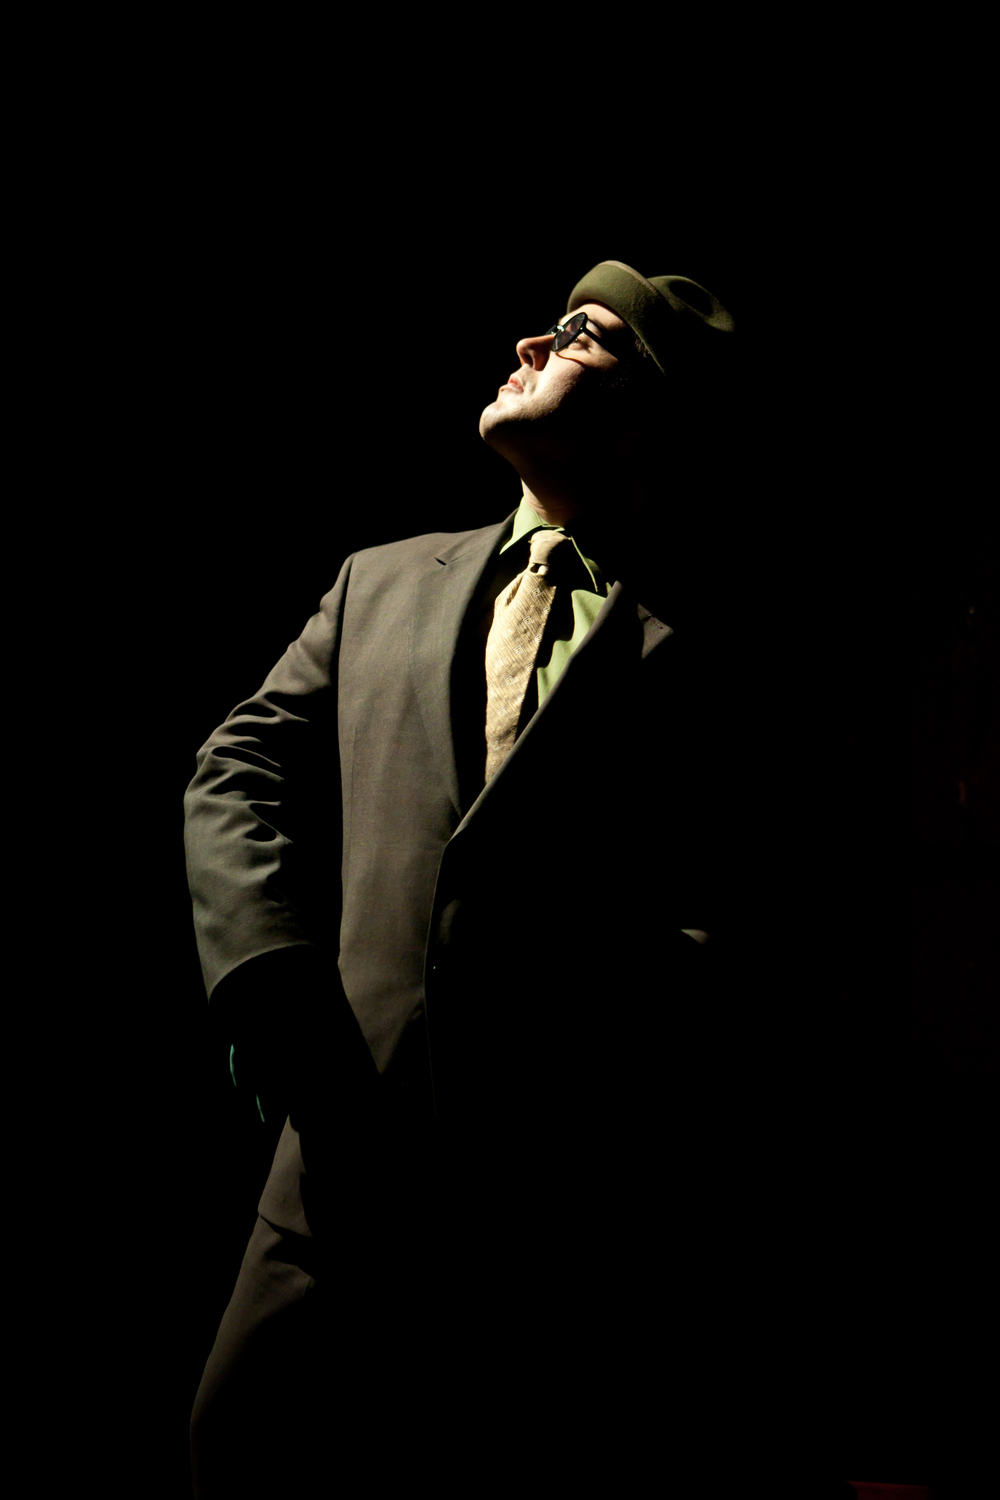 Walking Shadow Theatre Company,   after the quake.   Pictured: Brant Miller as Frog. Photo credit: Dan Norman.   Director: Amy Rummenie,   Costume design: Andrea Gross,   Lighting design: Peter Mitchell,   Scenic design: Steve Kath